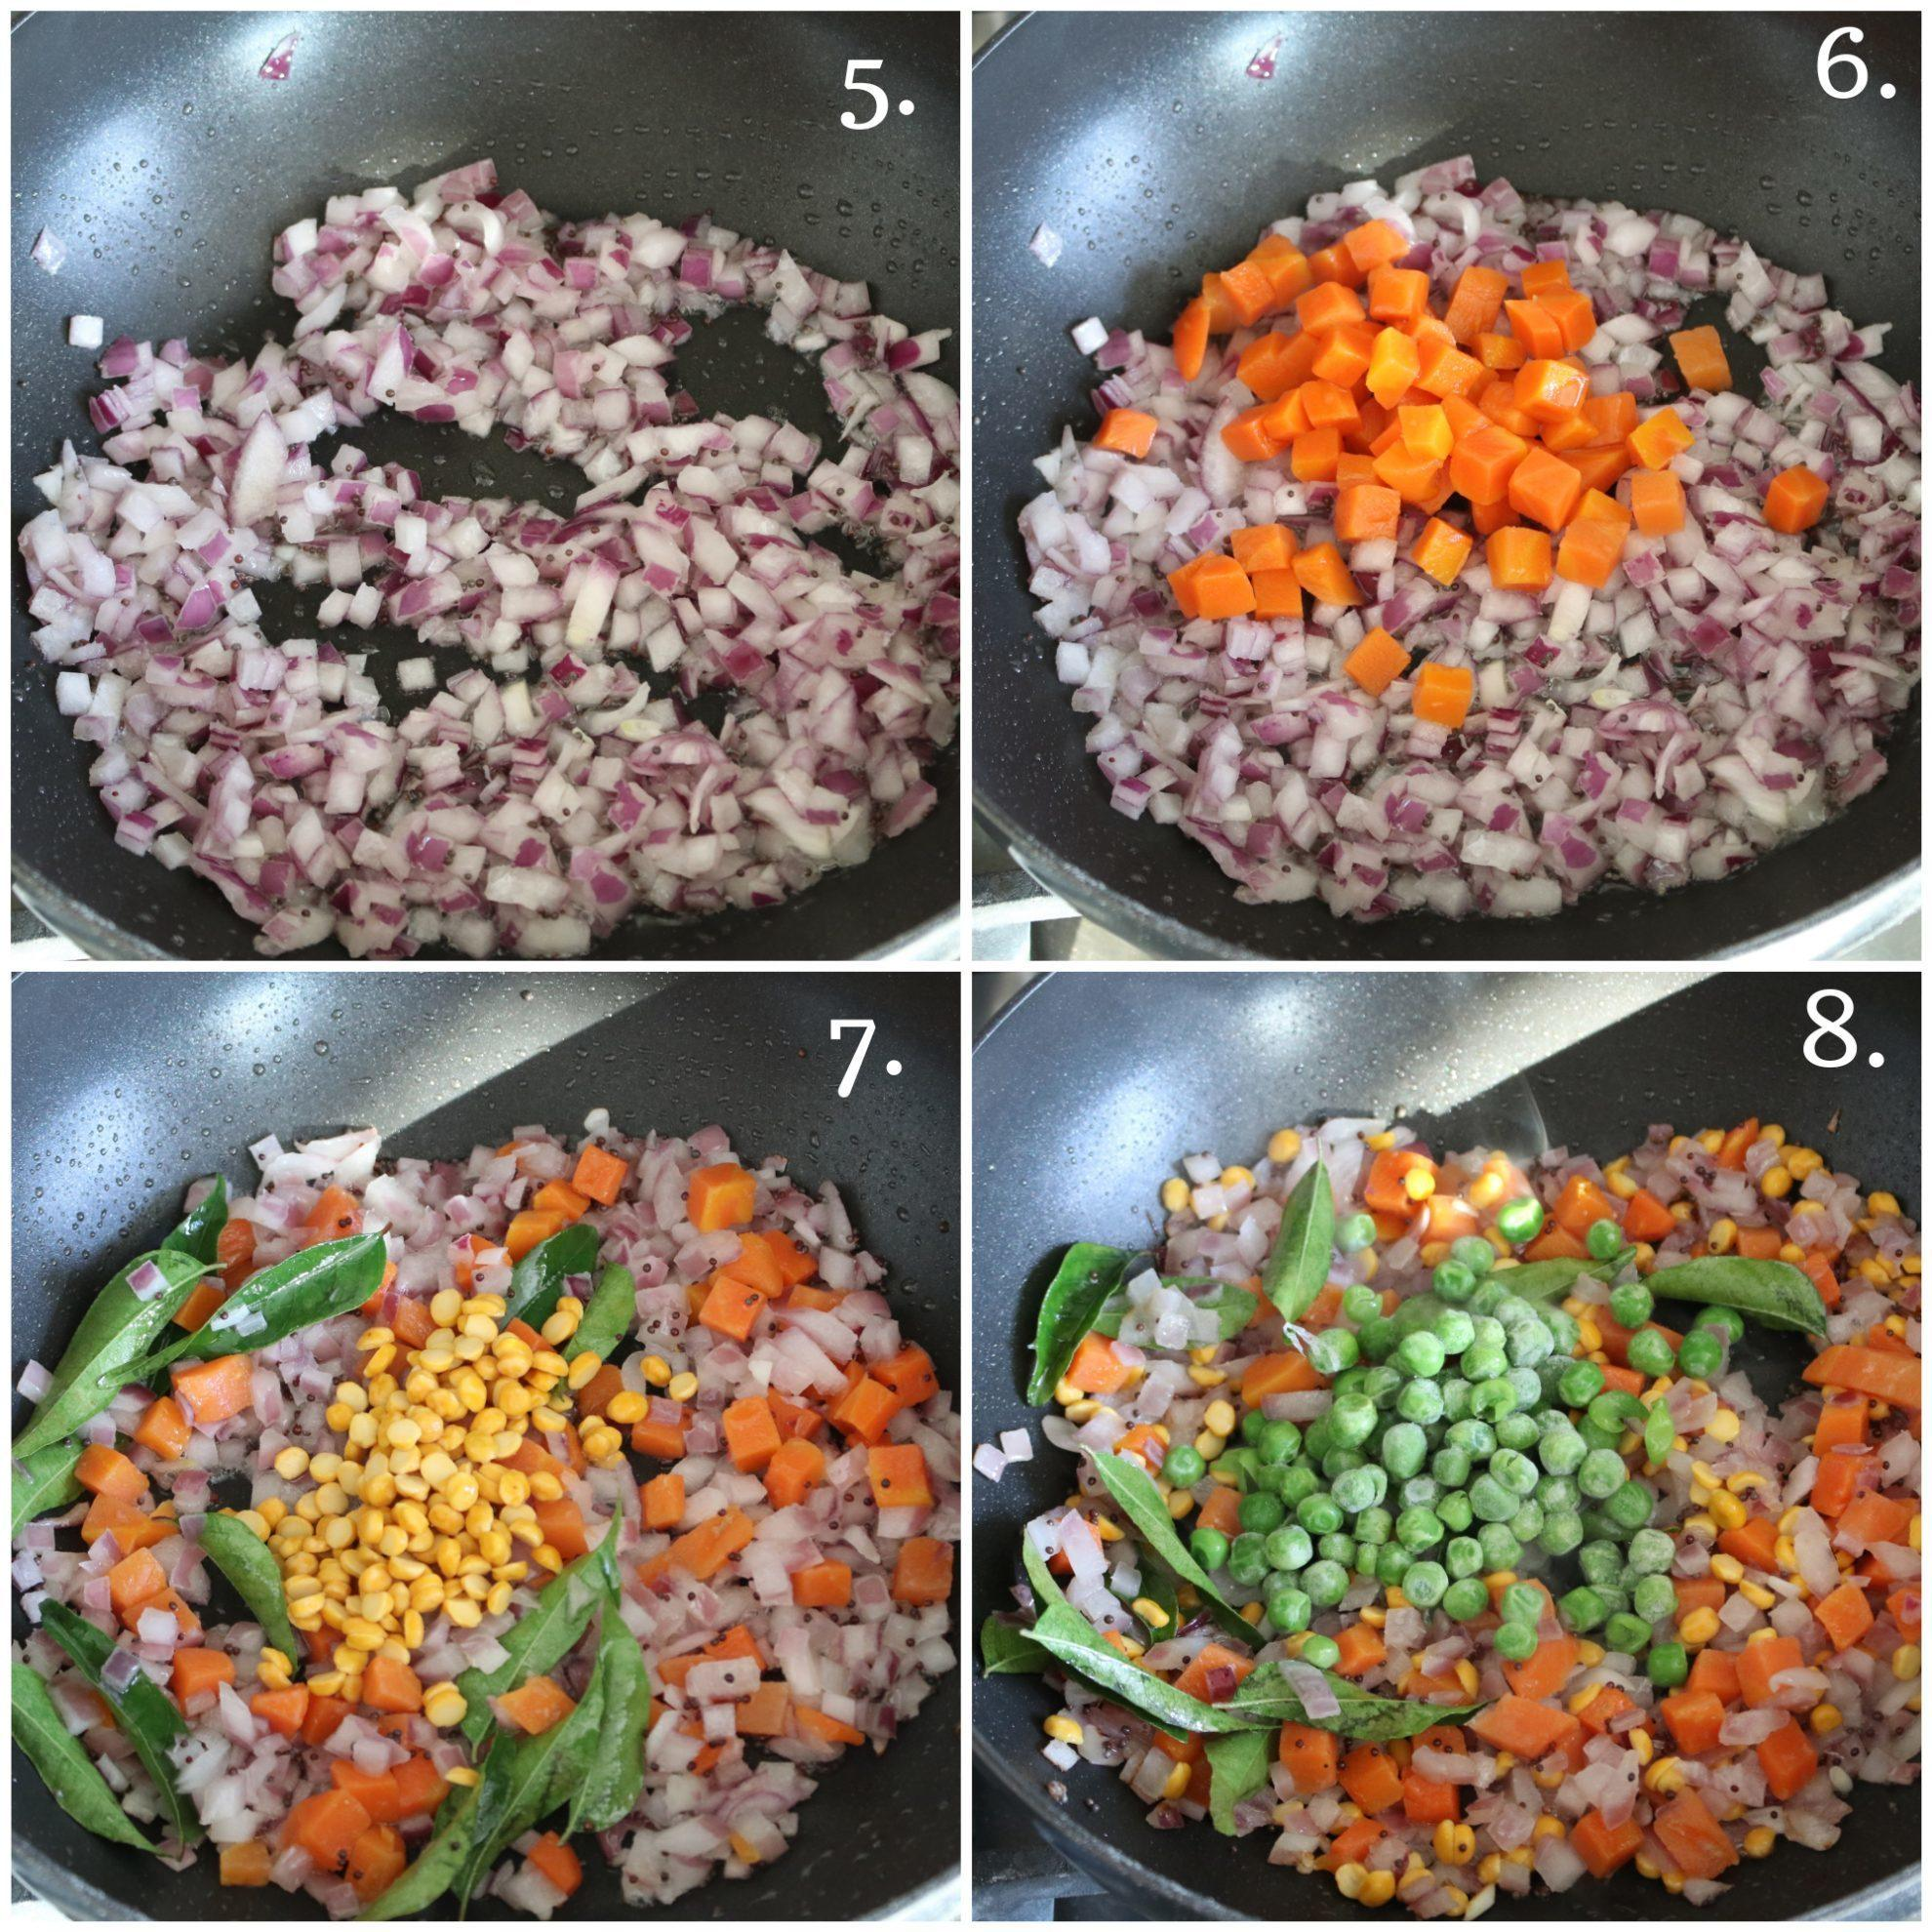 Step by step making of upma